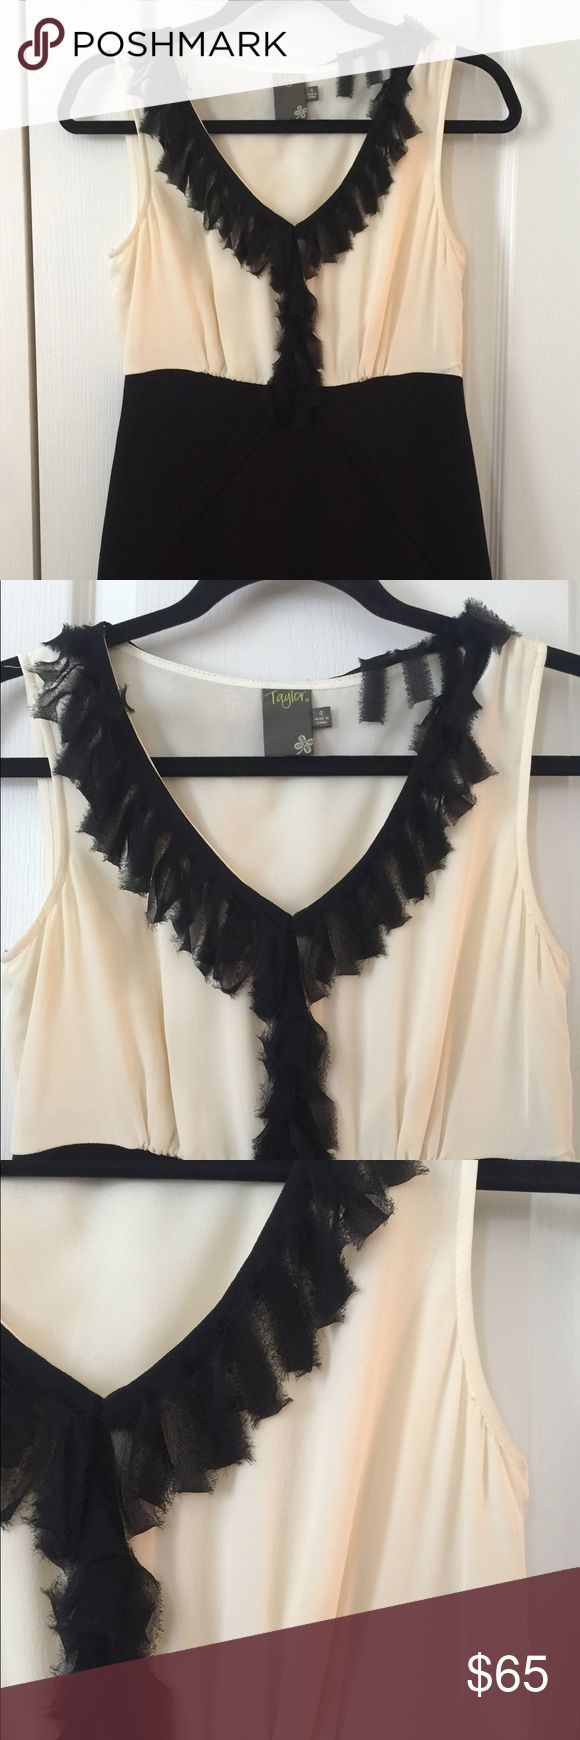 Nordstrom brand black and cream party dress Super cute sleeveless color block Taylor dress with detailed ruffles on neck.  Straight fit. Heavy knits Teri also. Worn only once. No flaws or damage. Taylor Dresses